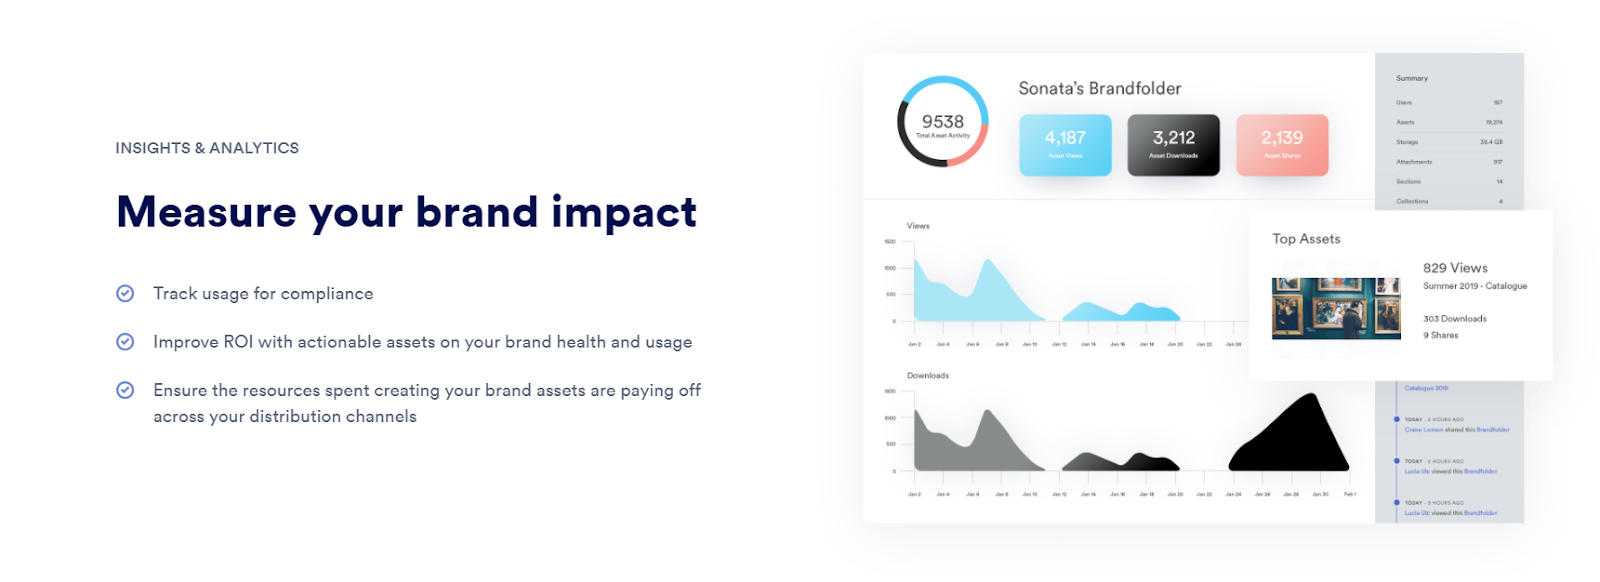 Overview of Brandfolder asset insights and reporting